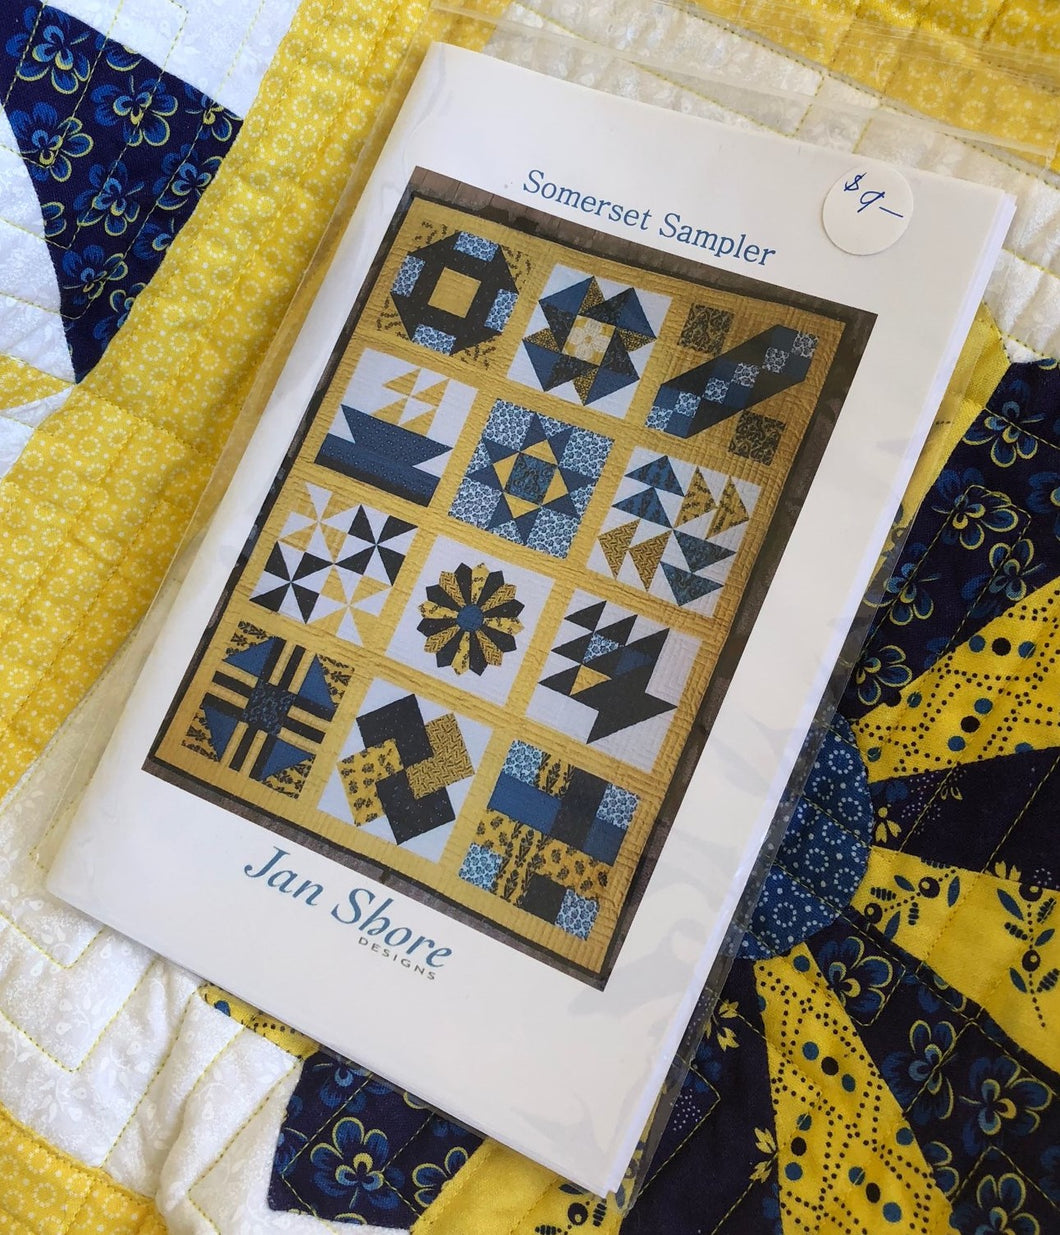 Somerset Collection by Jan Shore ~ Sampler Quilt Pattern